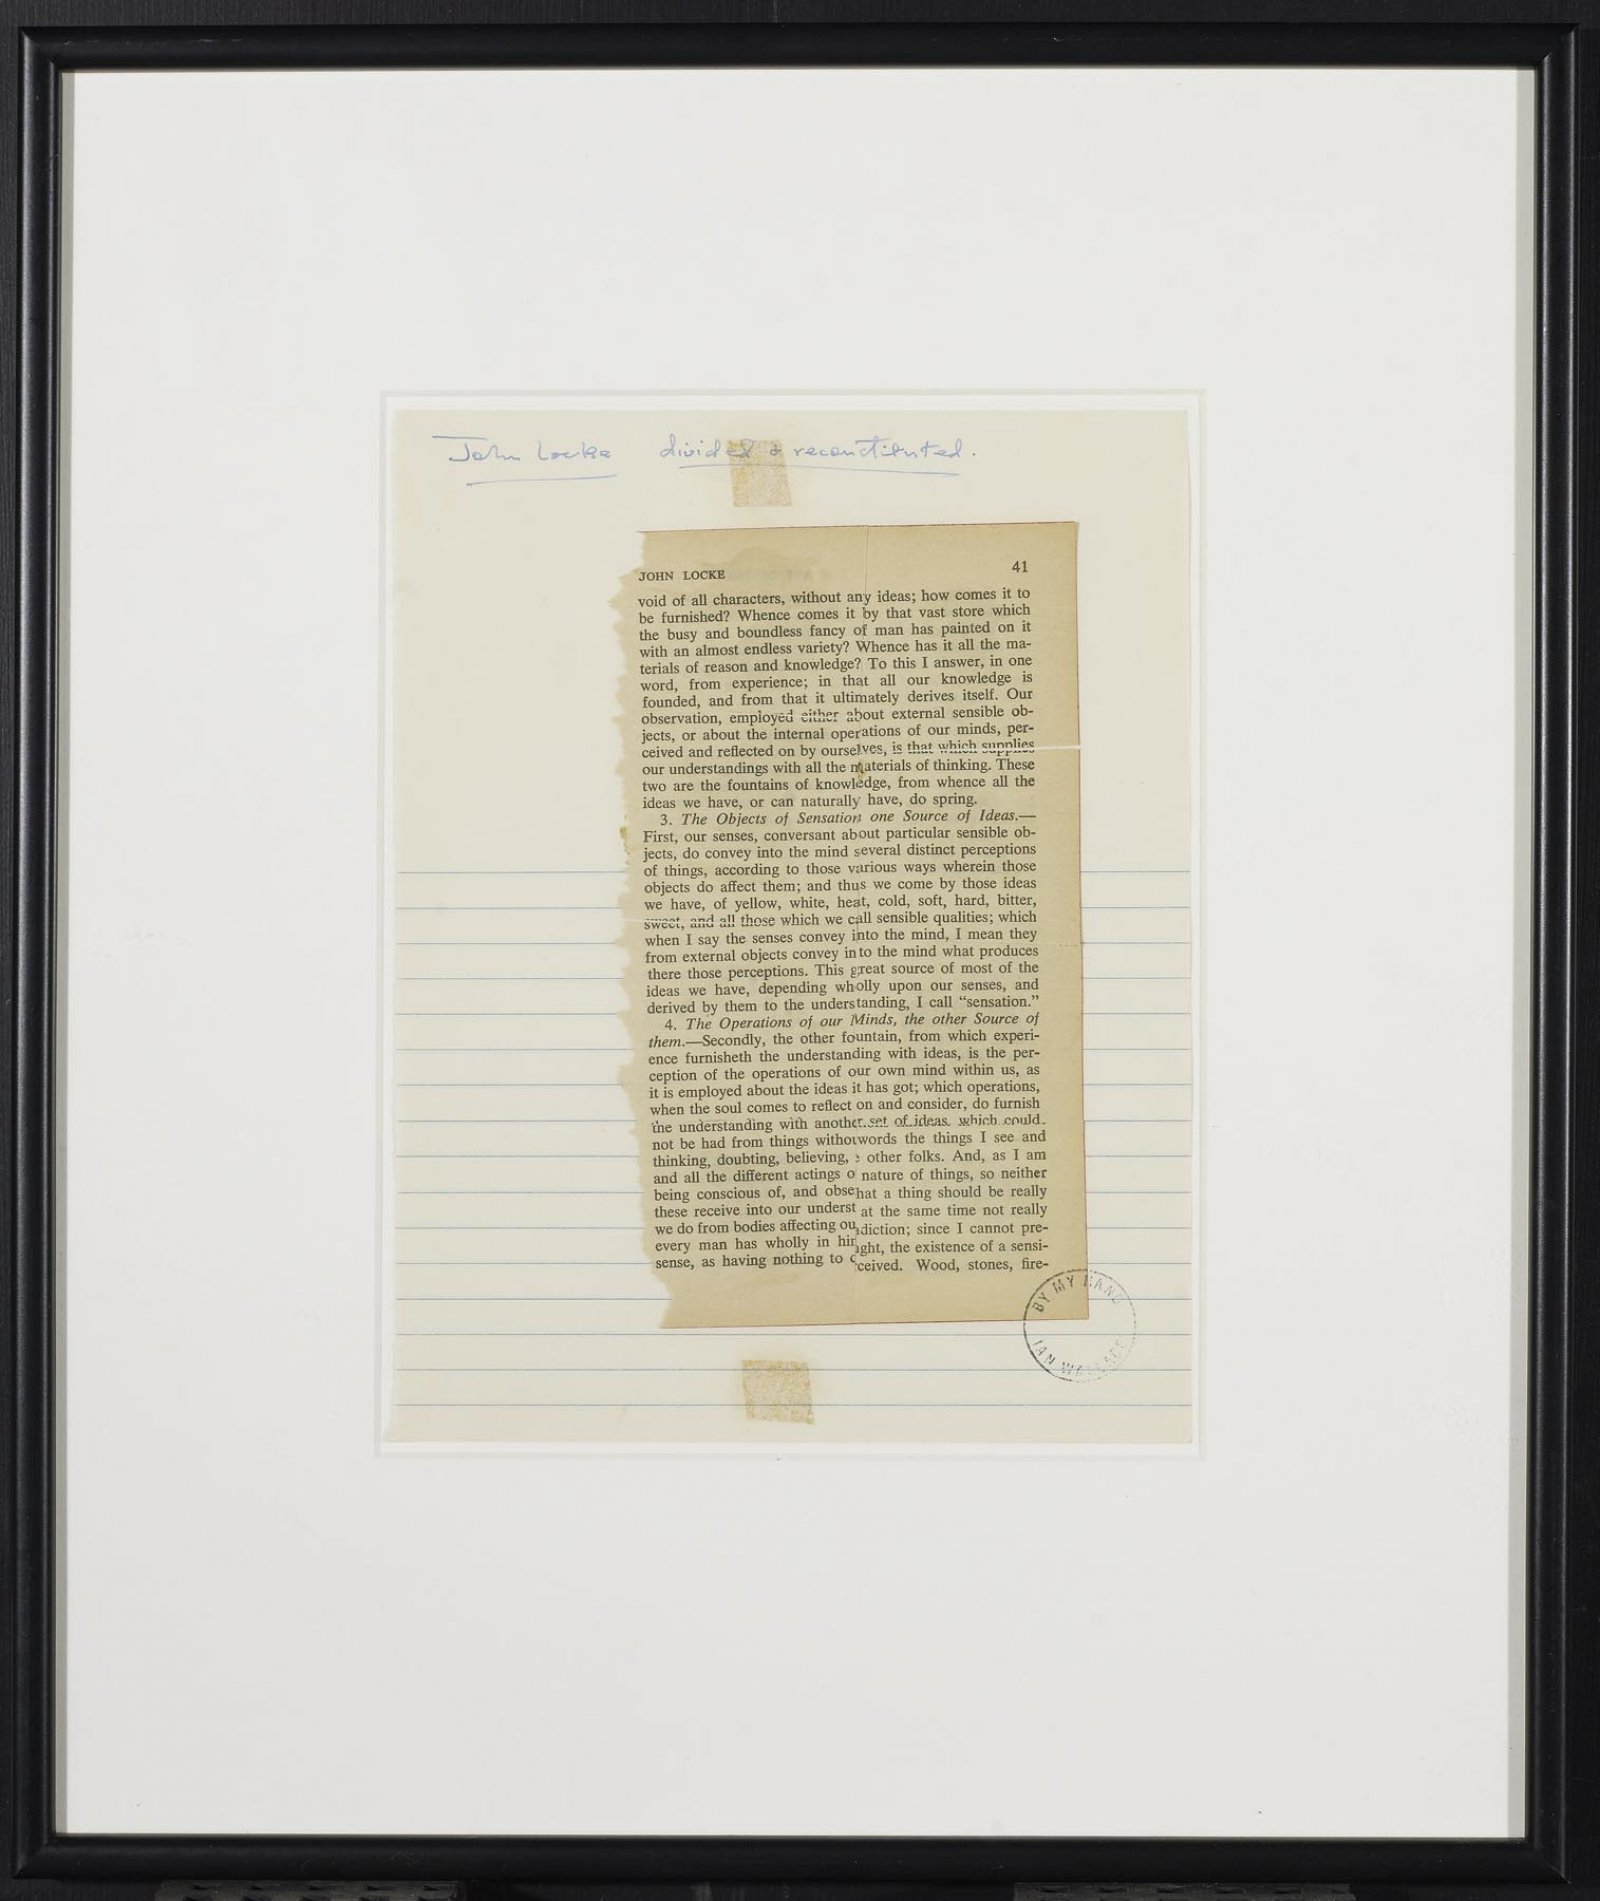 Ian Wallace,John Locke Divided and Reconstituted, 1969,printed page collage,9 x7 in. (23 x 18 cm)